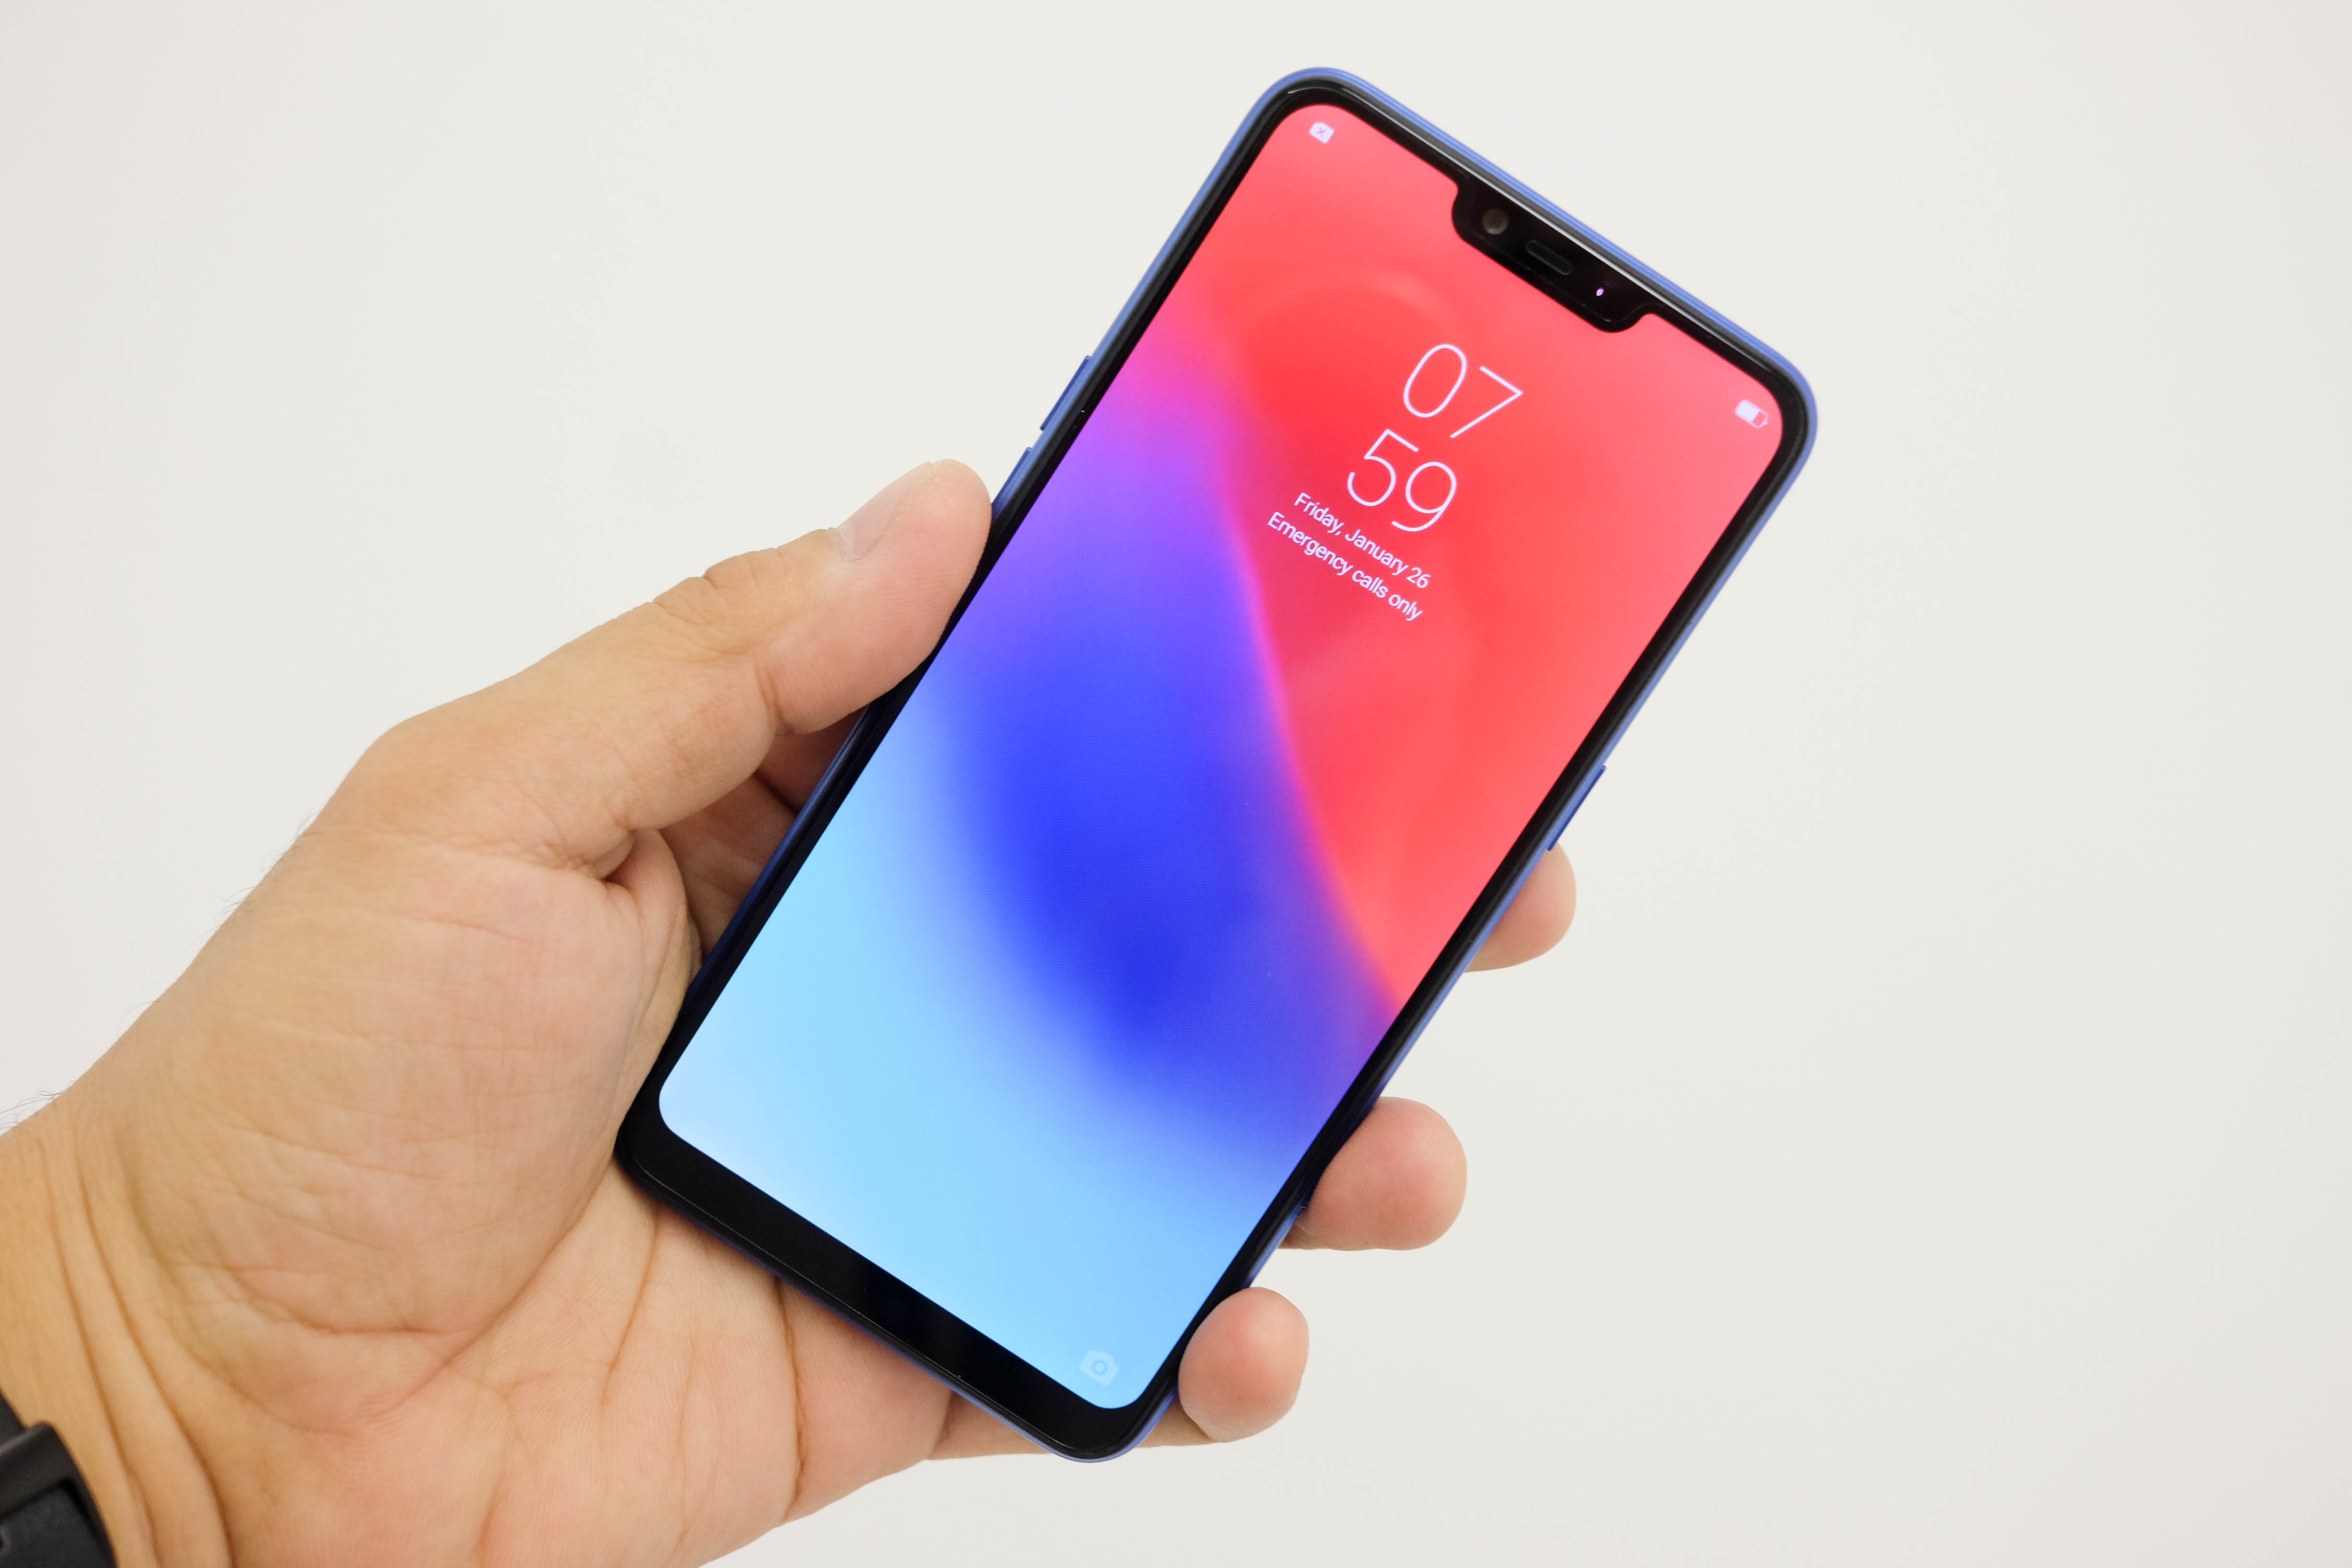 Realme C1 Goes on Sale at Lazada for P5,490